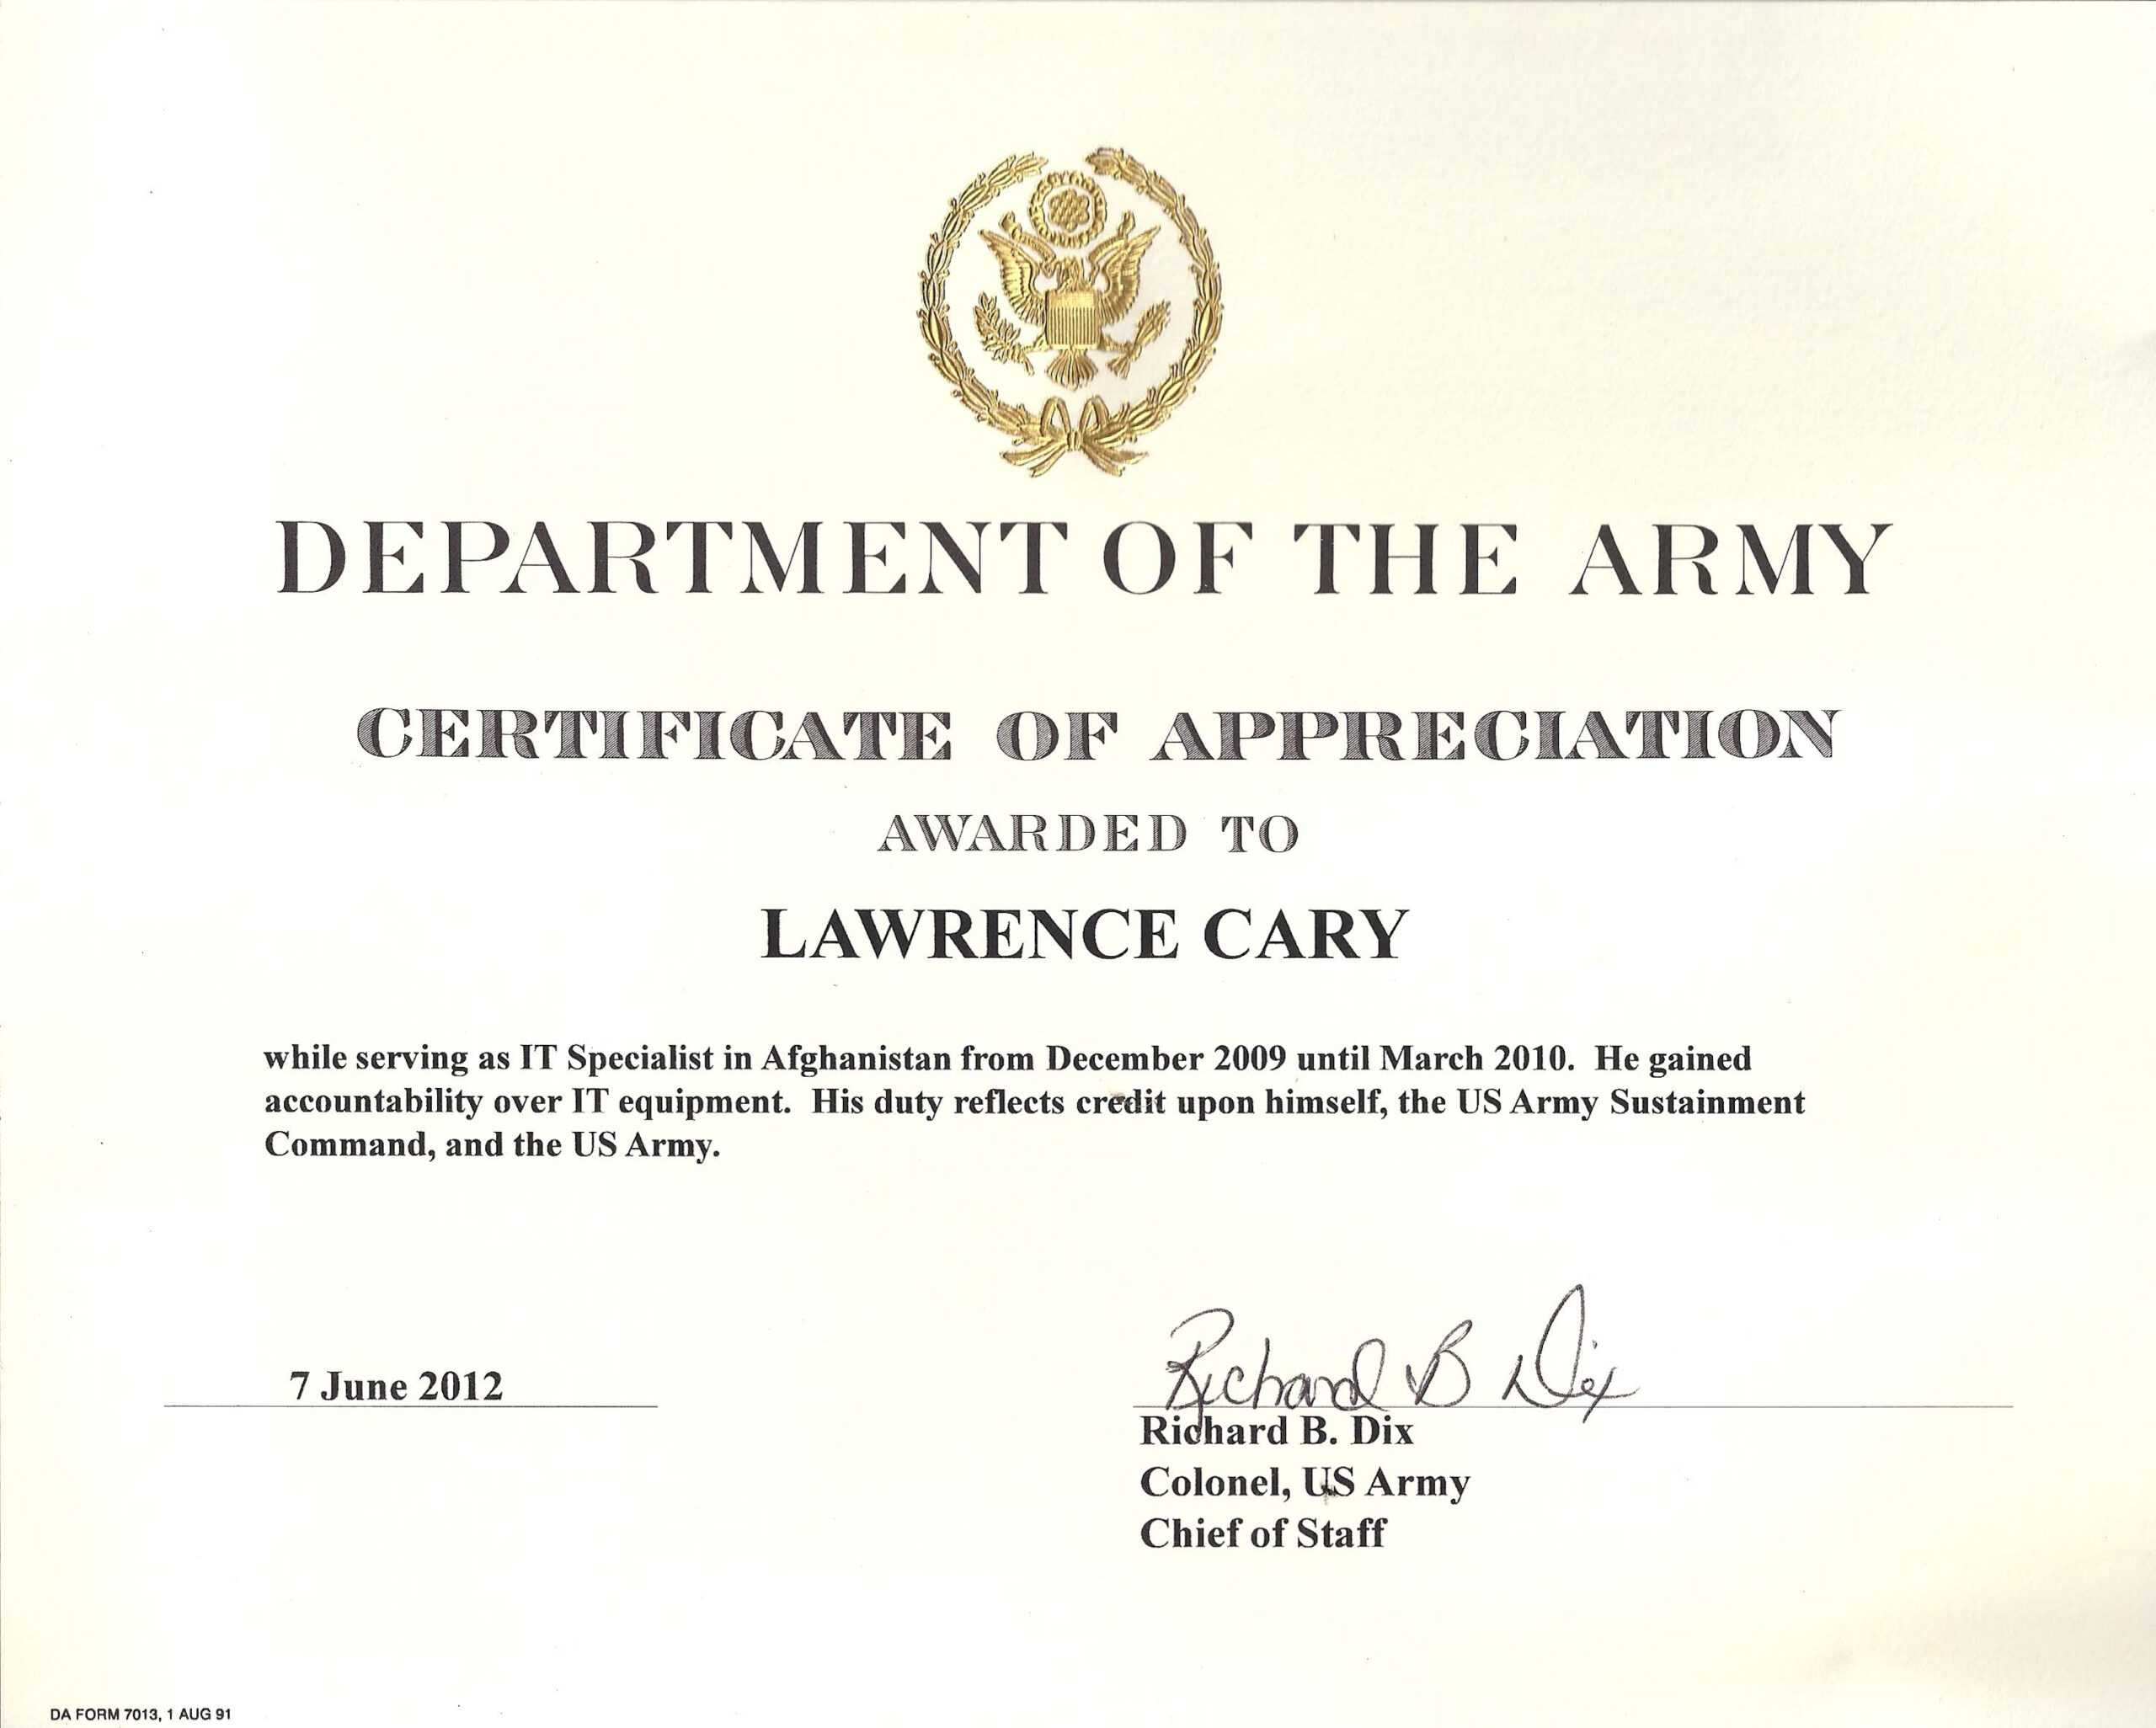 001 Army Certificate Of Appreciation Template Ideas Pertaining To Army Certificate Of Achievement Template